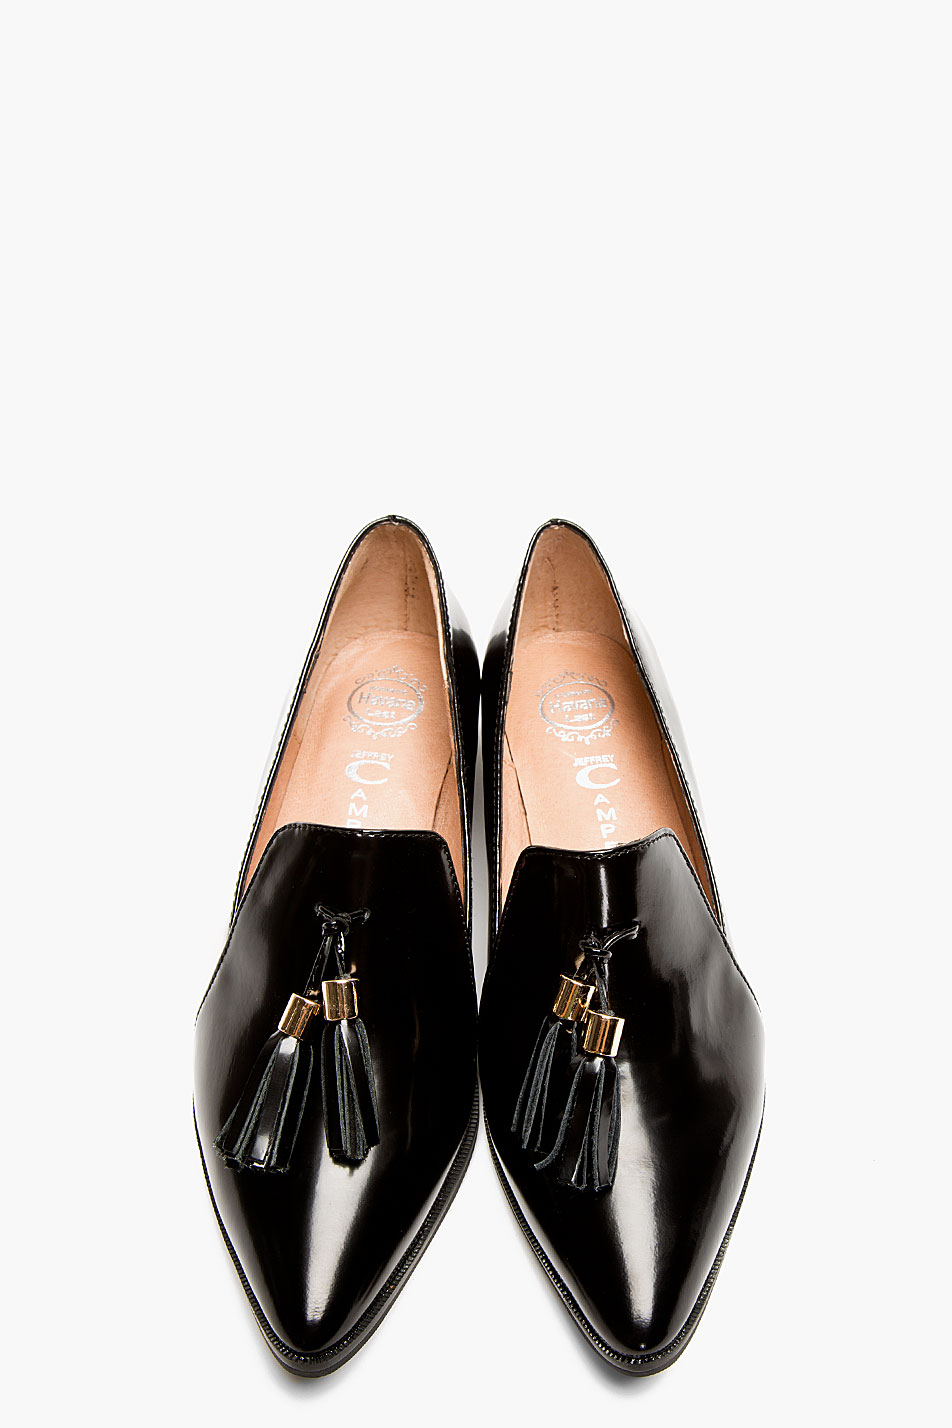 Lyst - Jeffrey Campbell Black Buffed Leather Pointed Blane Loafers ...